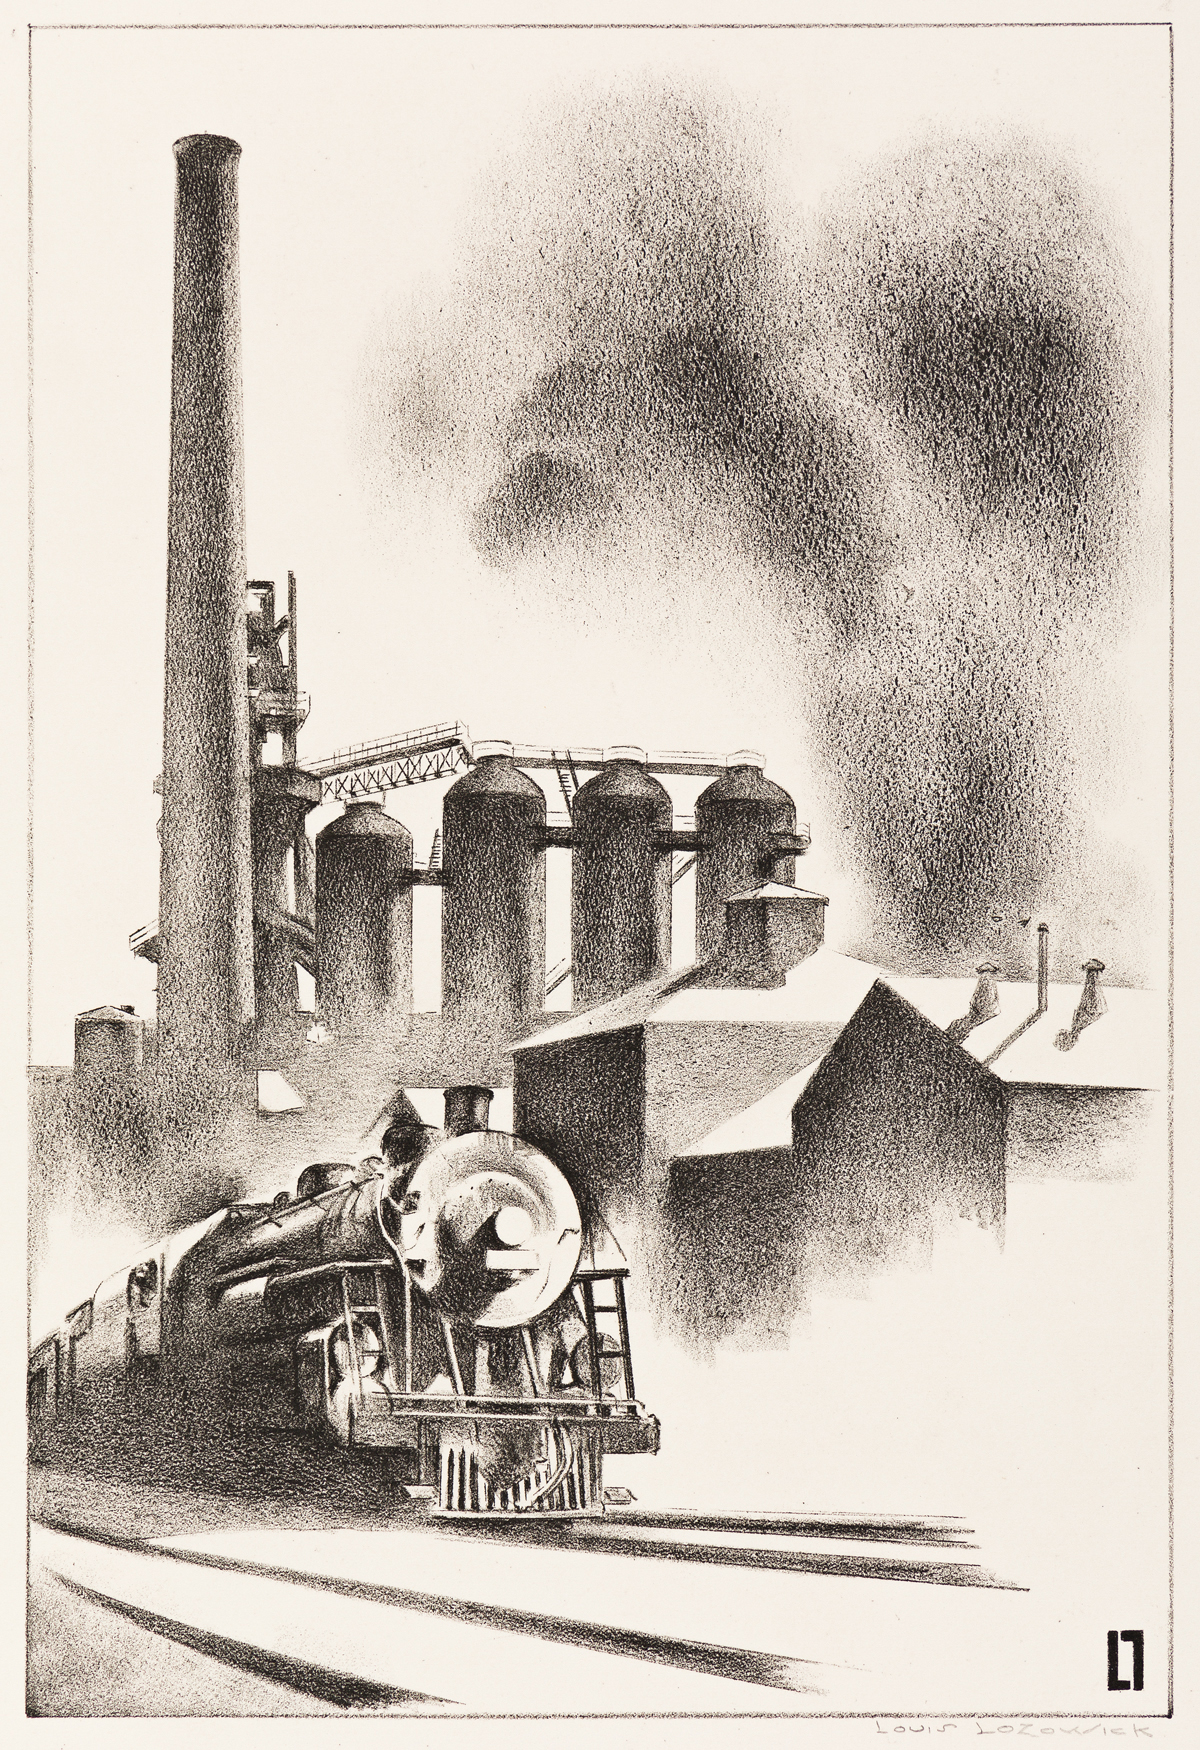 LOUIS LOZOWICK Train and Factory.